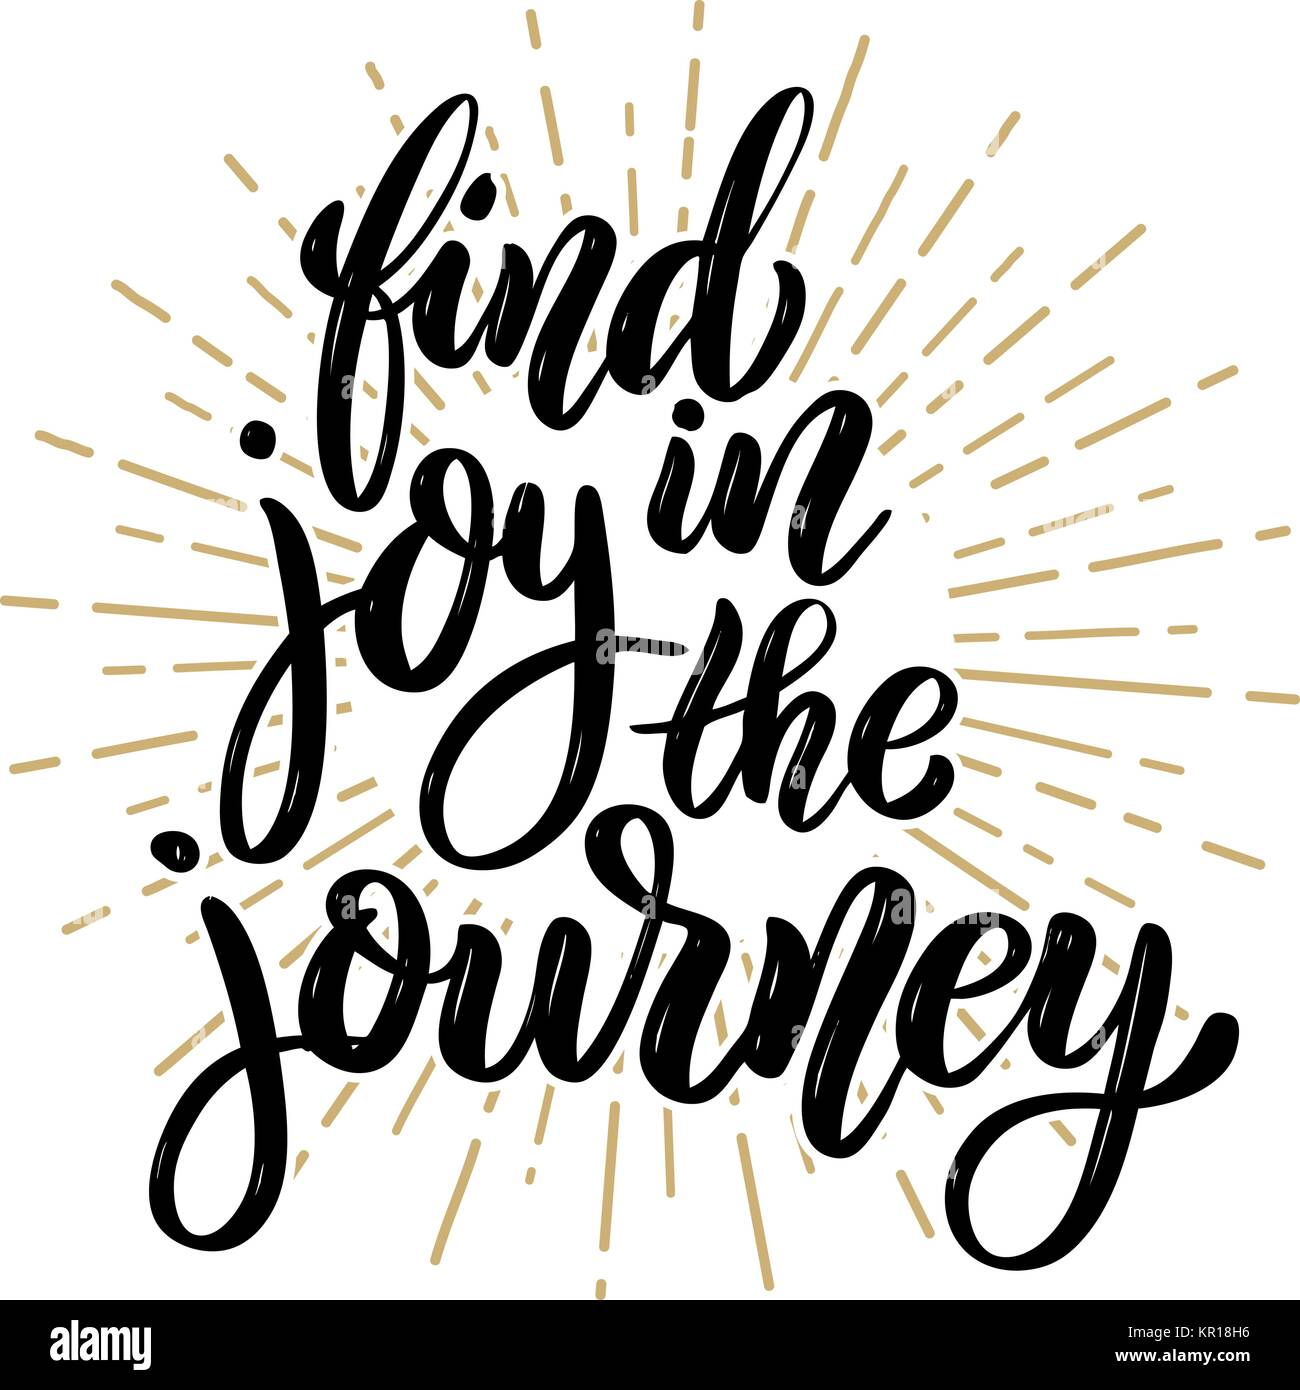 Find Joy In The Journey Hand Drawn Motivation Lettering Quote Stock